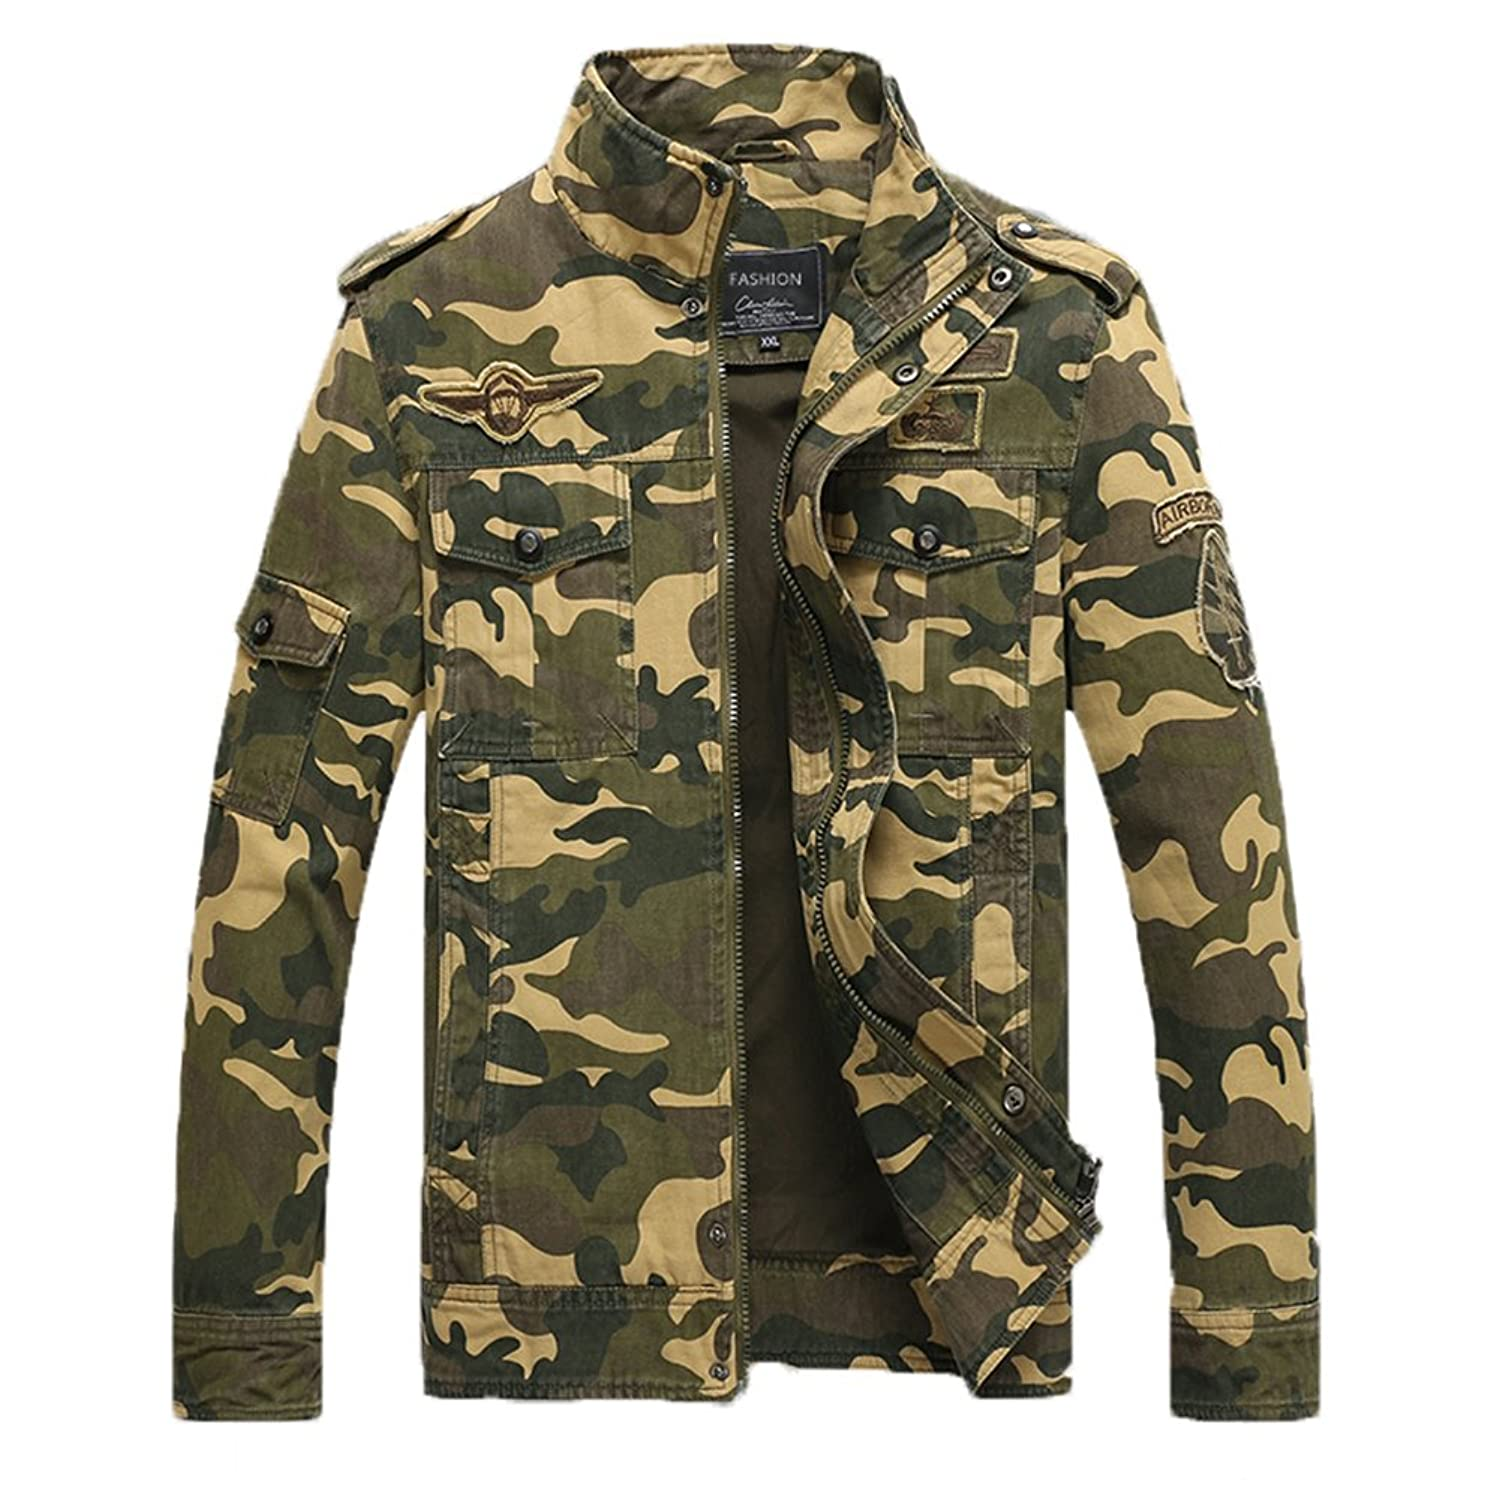 MANLUODANNI Men's Cotton Military Style Air Force Army Jacket Military Coat